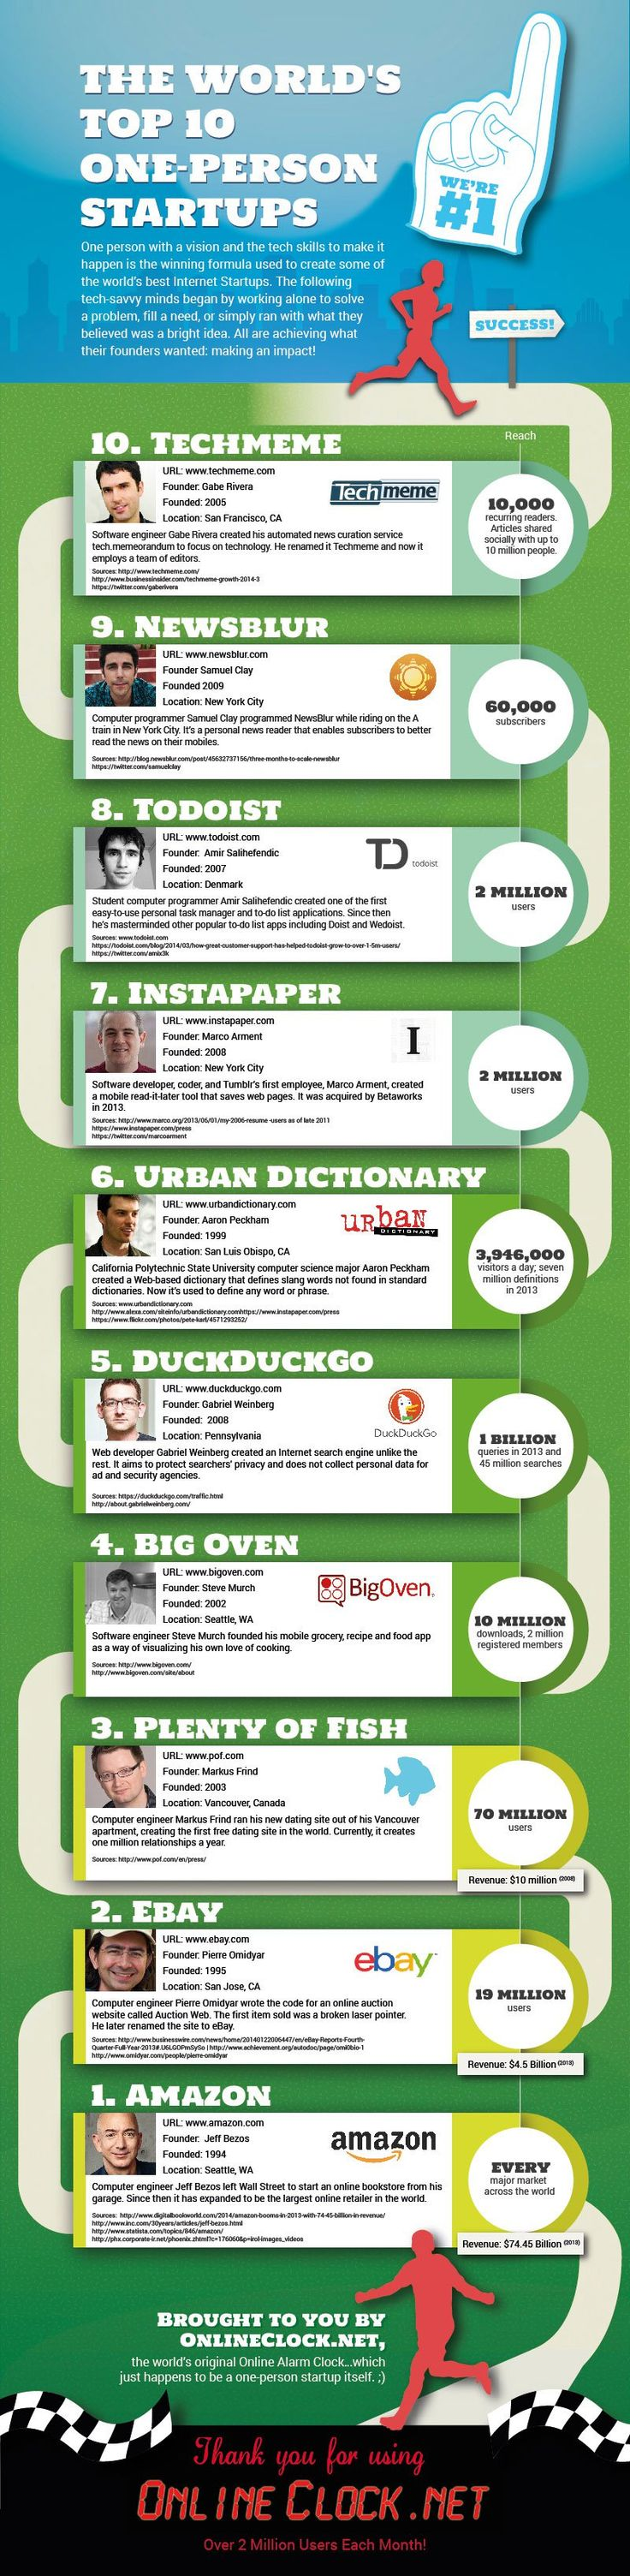 Top 10 One-Person #Startups